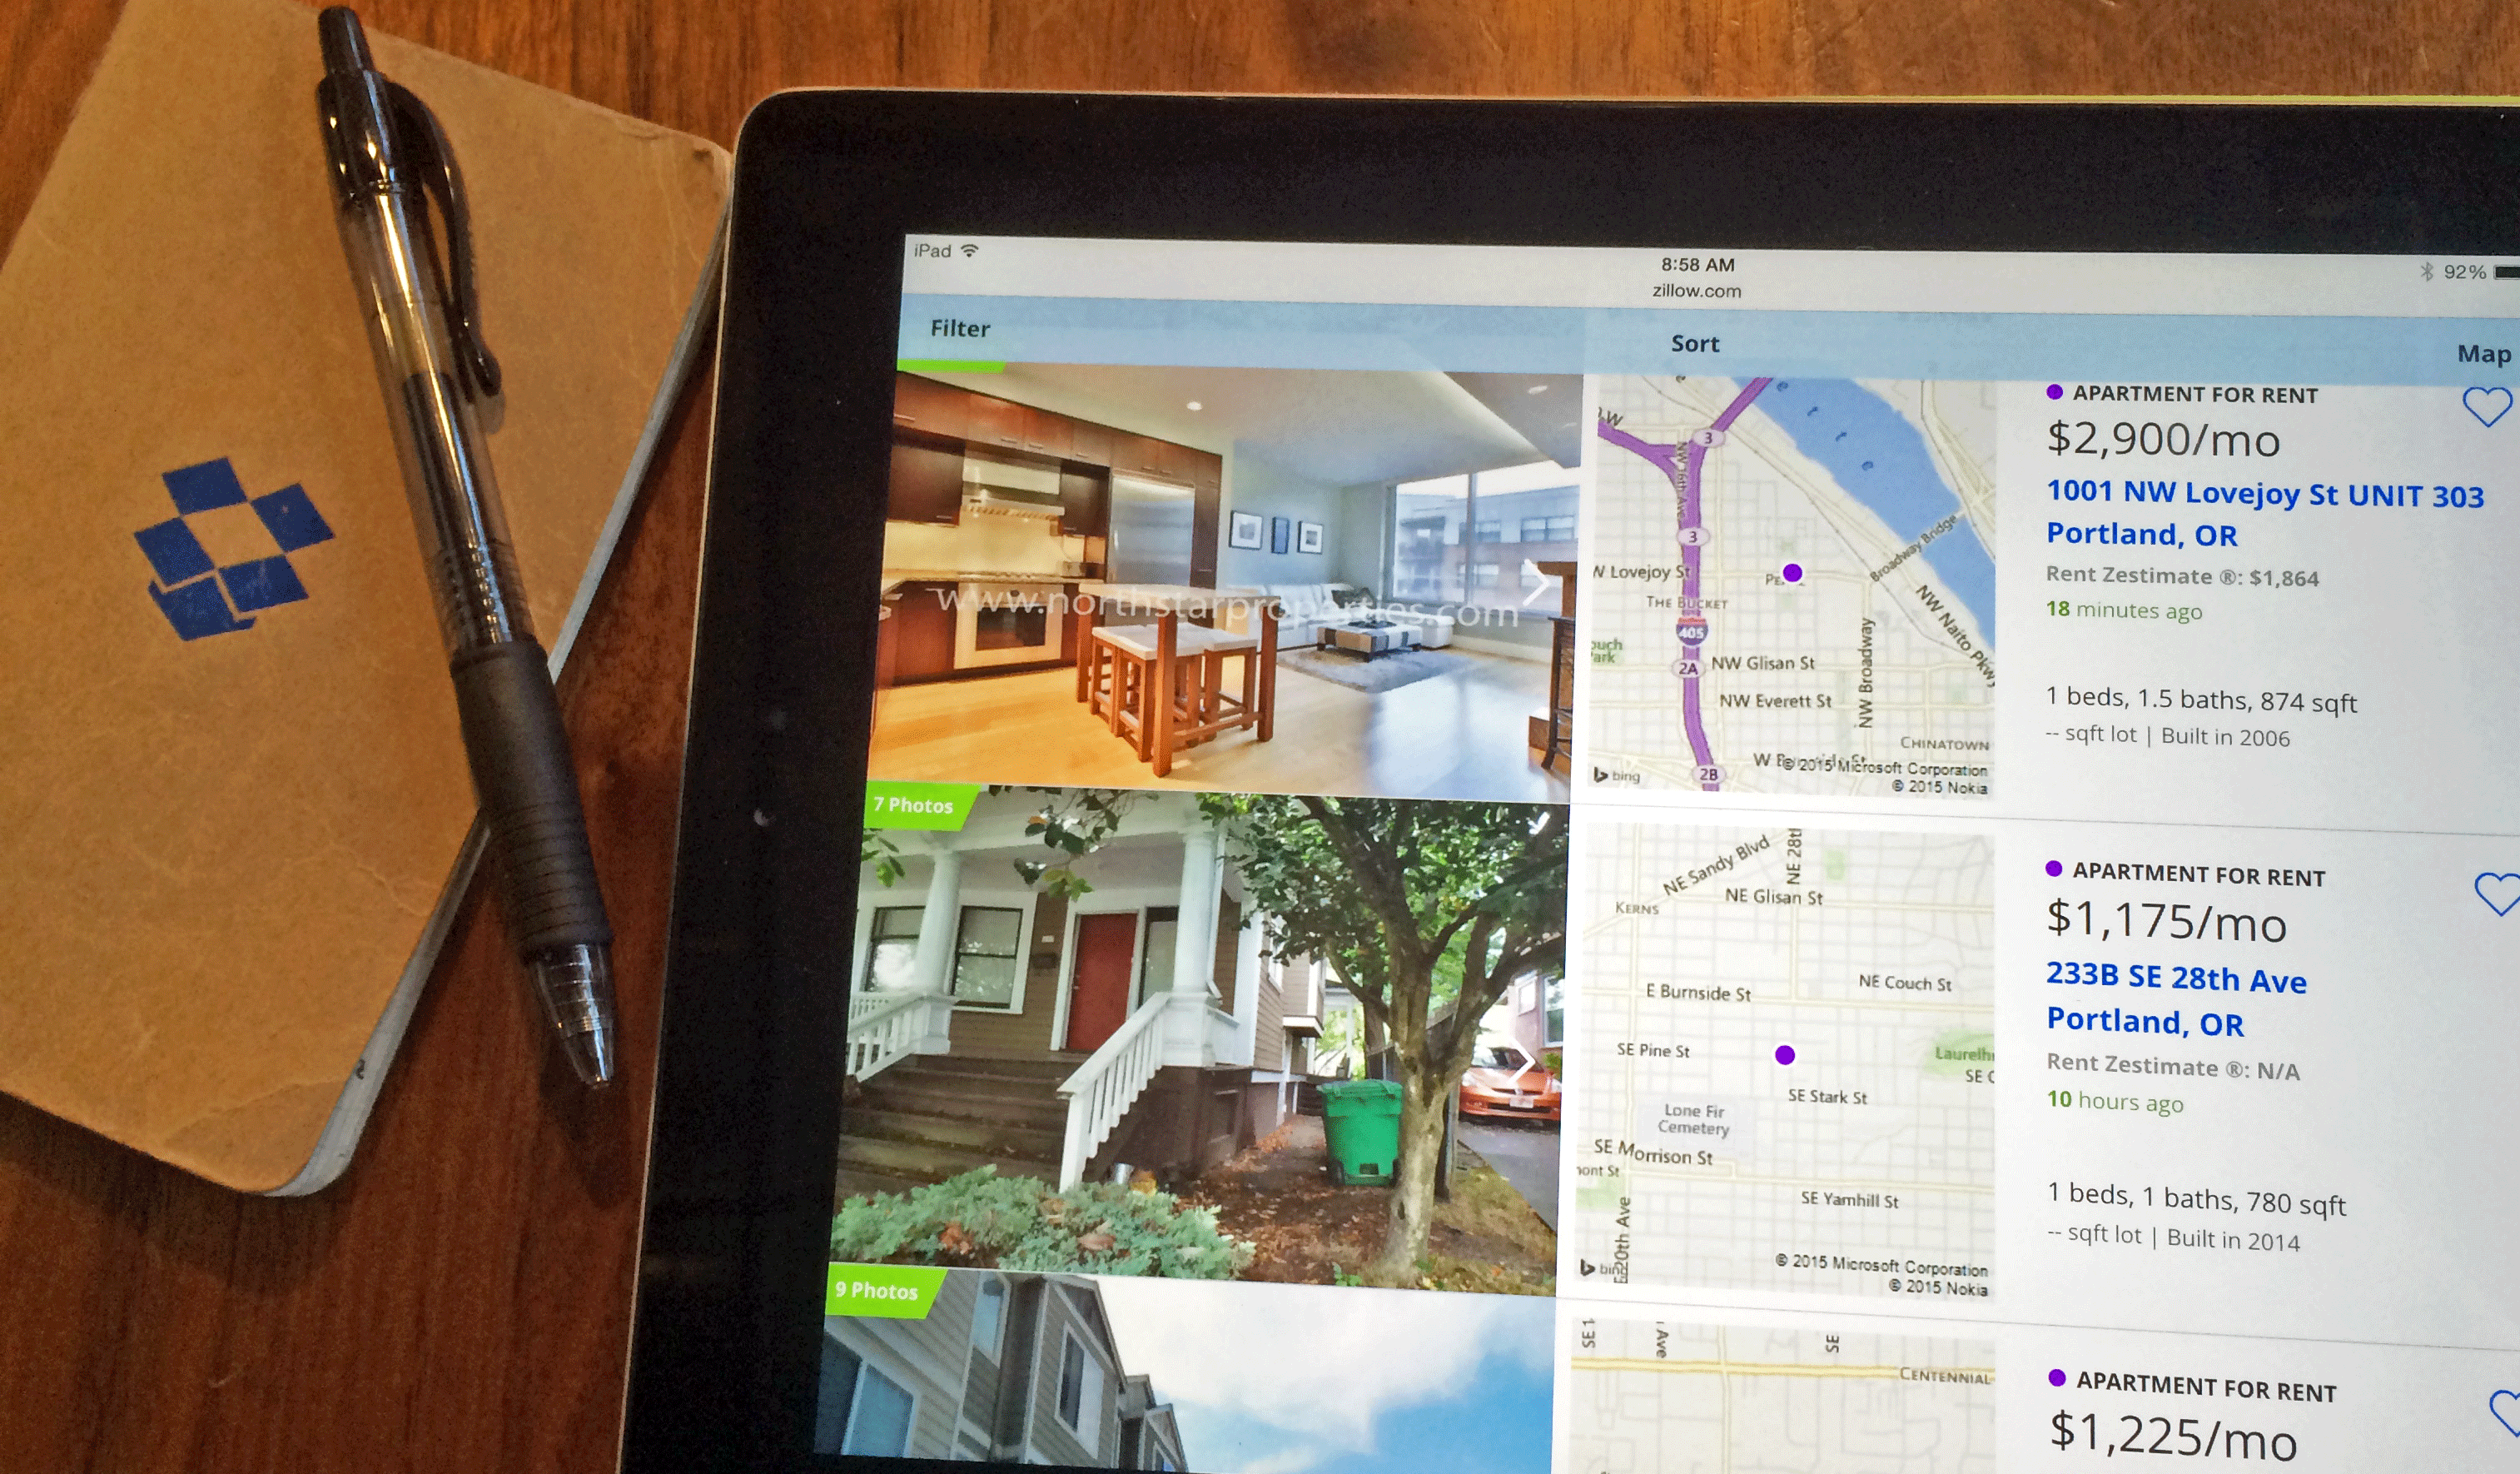 Apartment Hunting or House Hunting with Dropbox